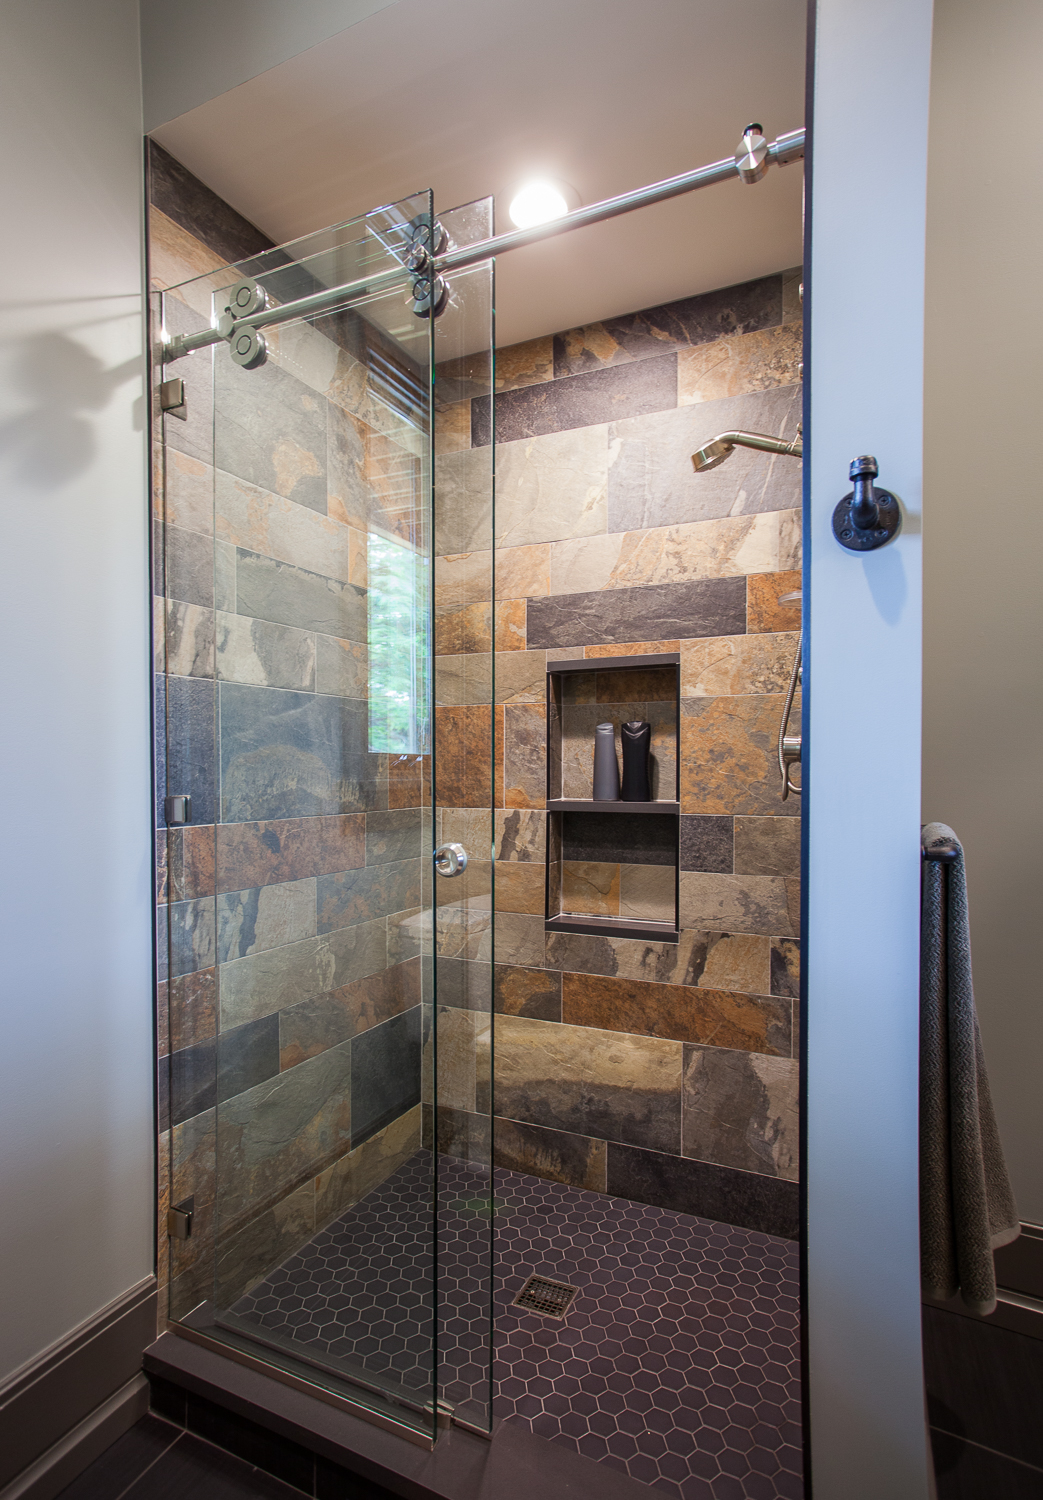 slate-tile-walls-in-shower.jpg